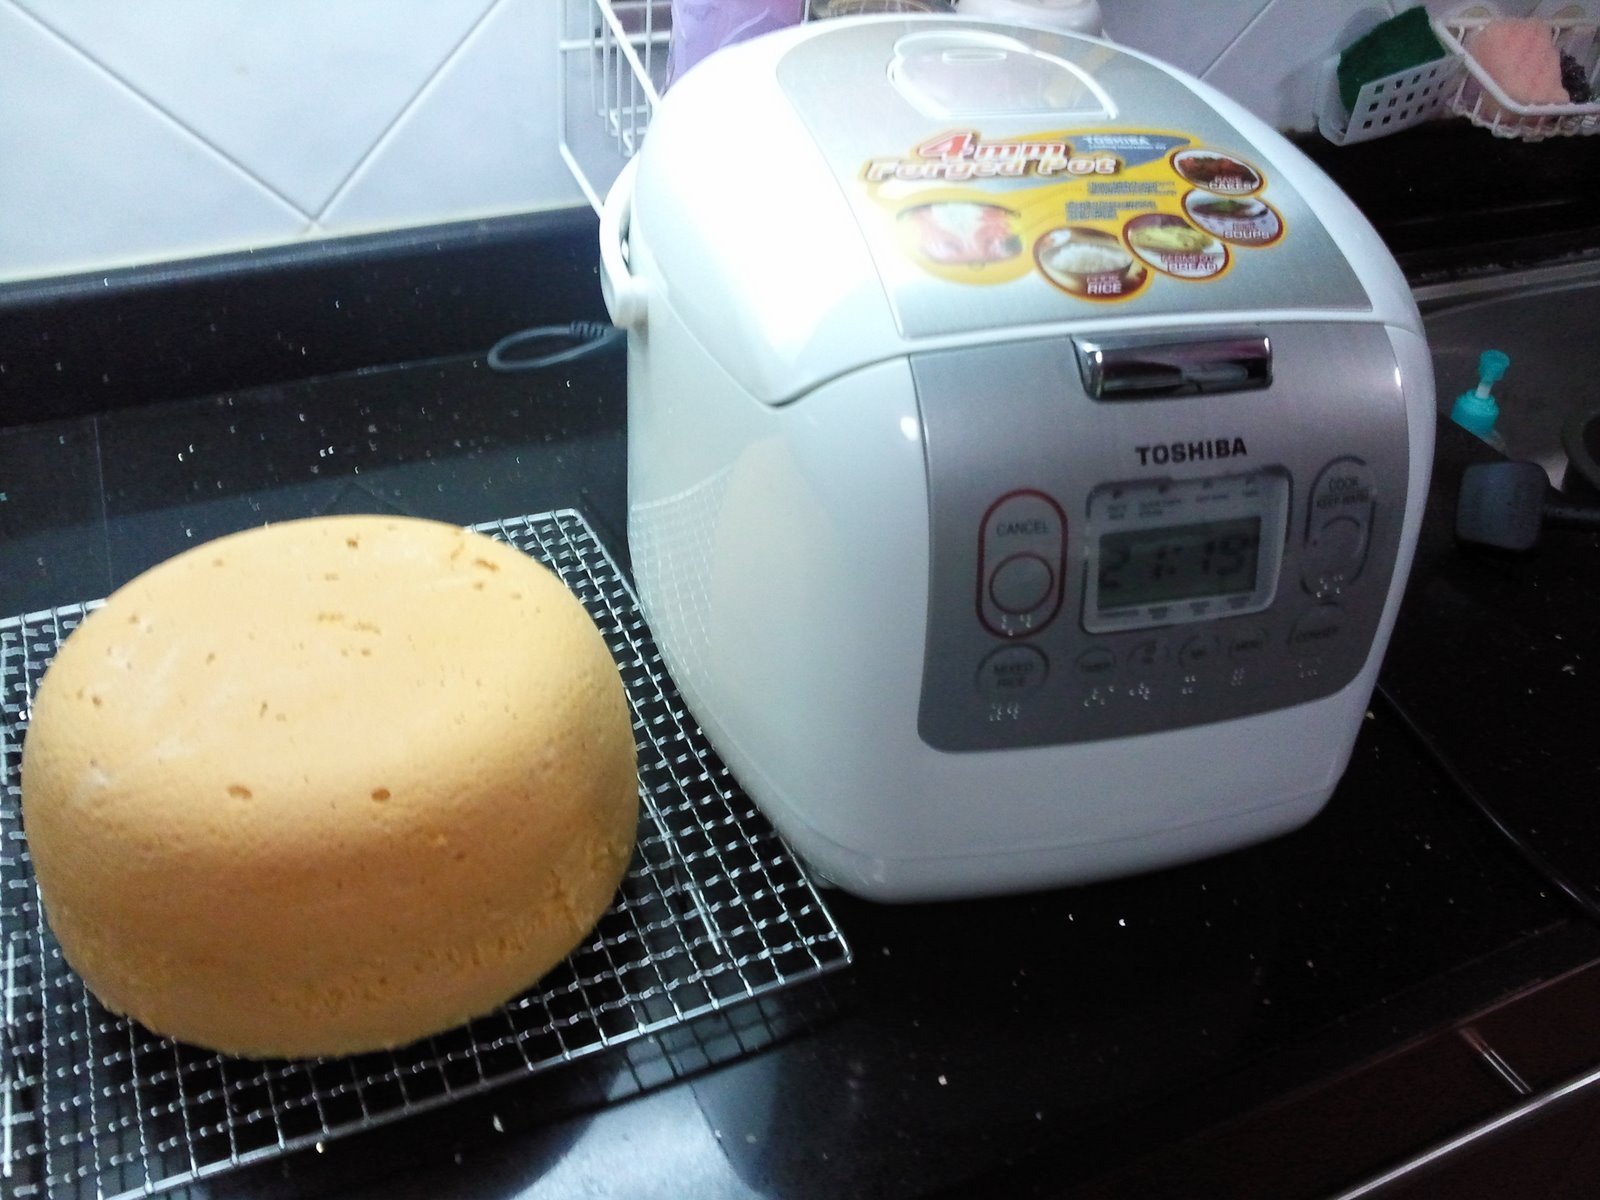 Cake Recipe In A Rice Cooker: Me, MyBakez & MyWhatever......: Rice Cooker Cake